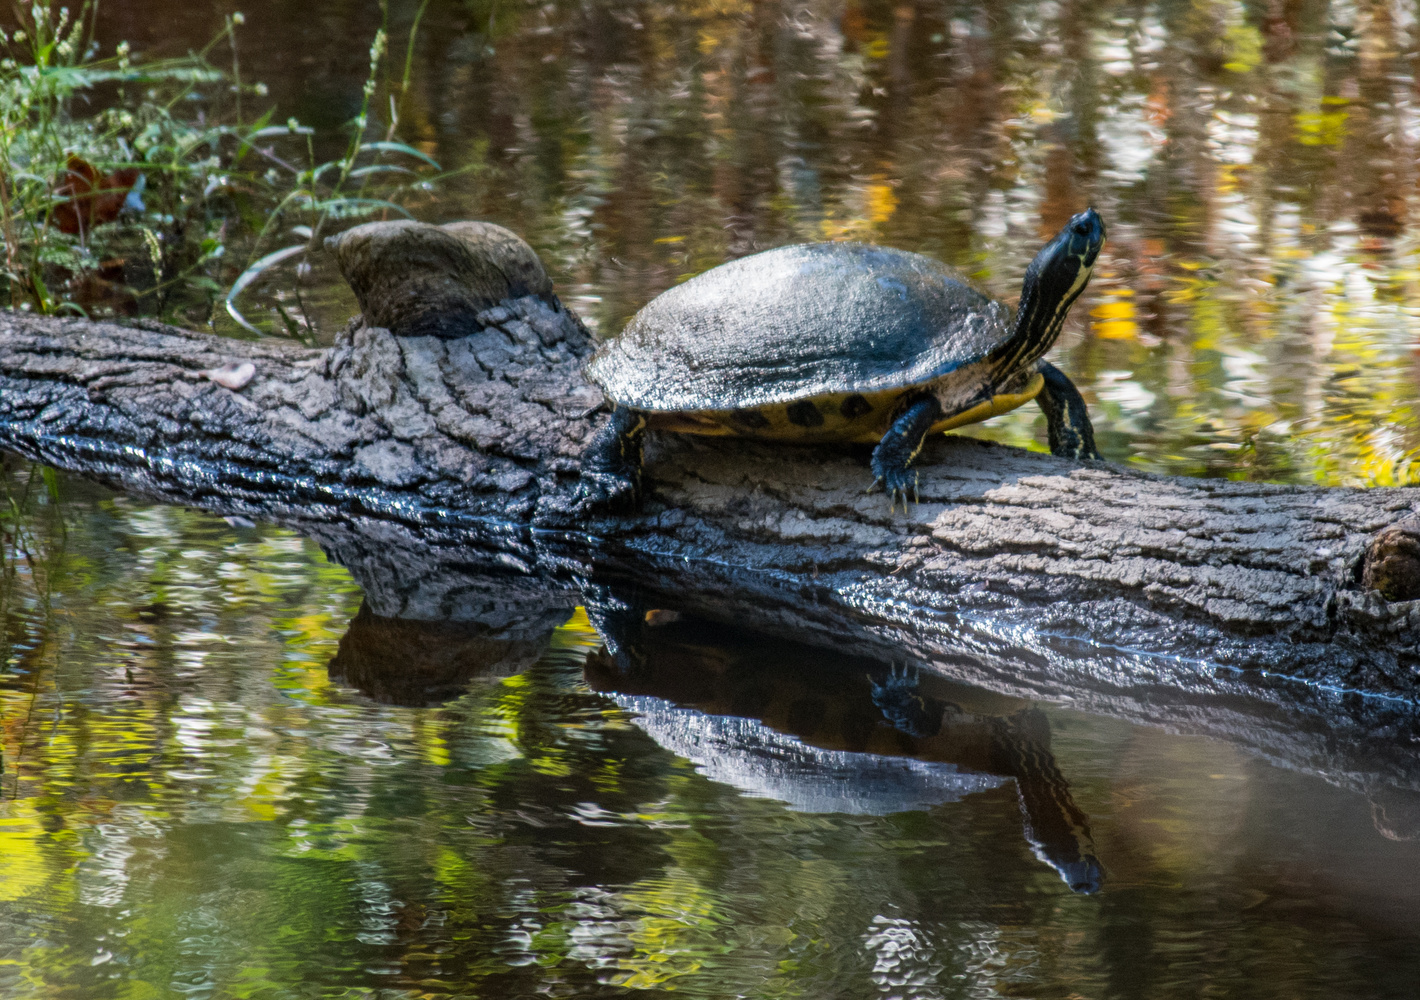 River Turtle by Steve Gaines